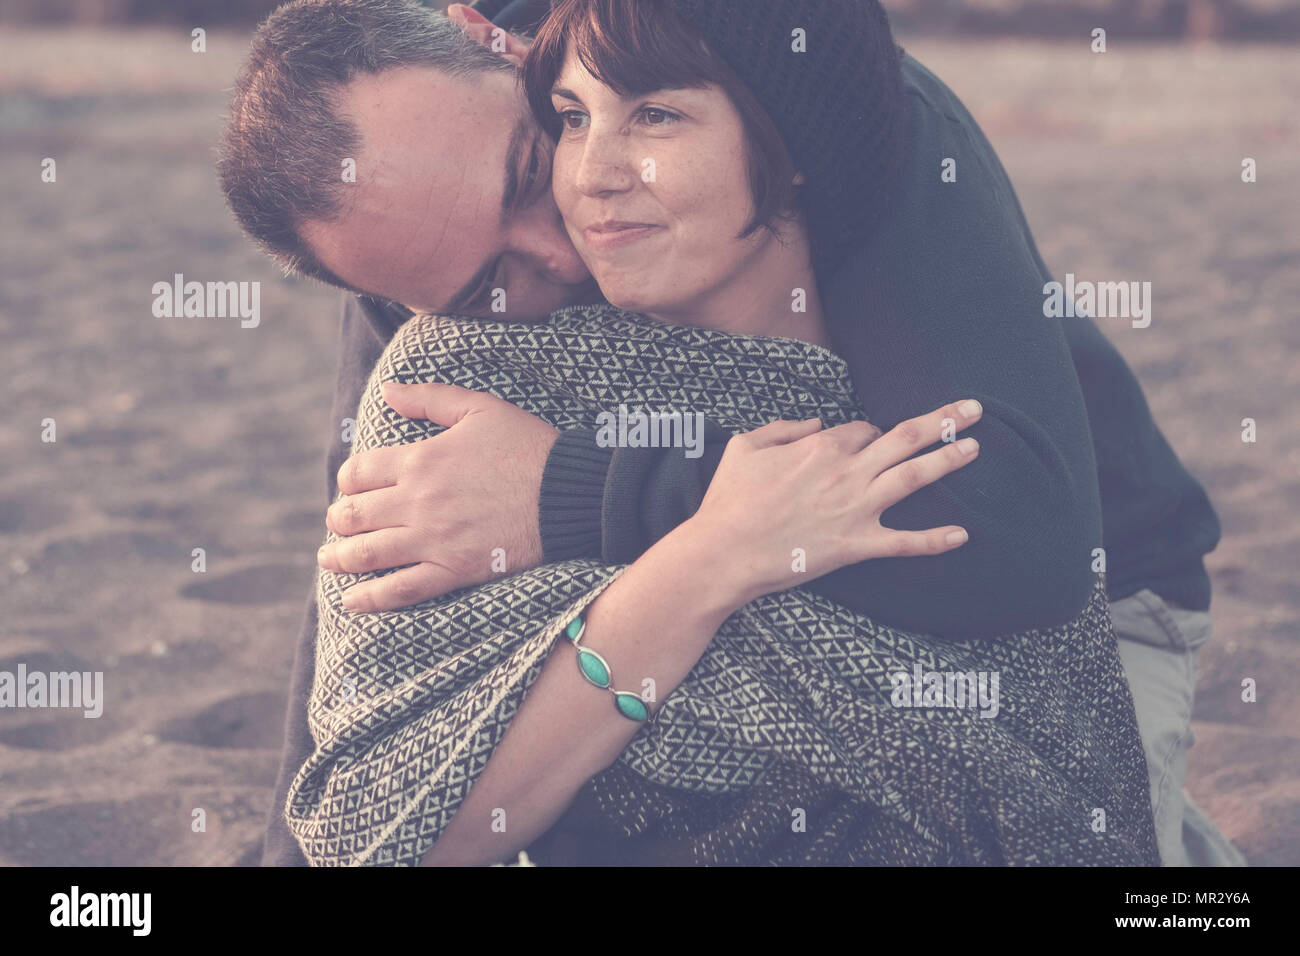 cute man and woman middle aged having fun in love at the beach outdoor. leisure activity and big hug for love concept and romantic scene the man embra - Stock Image